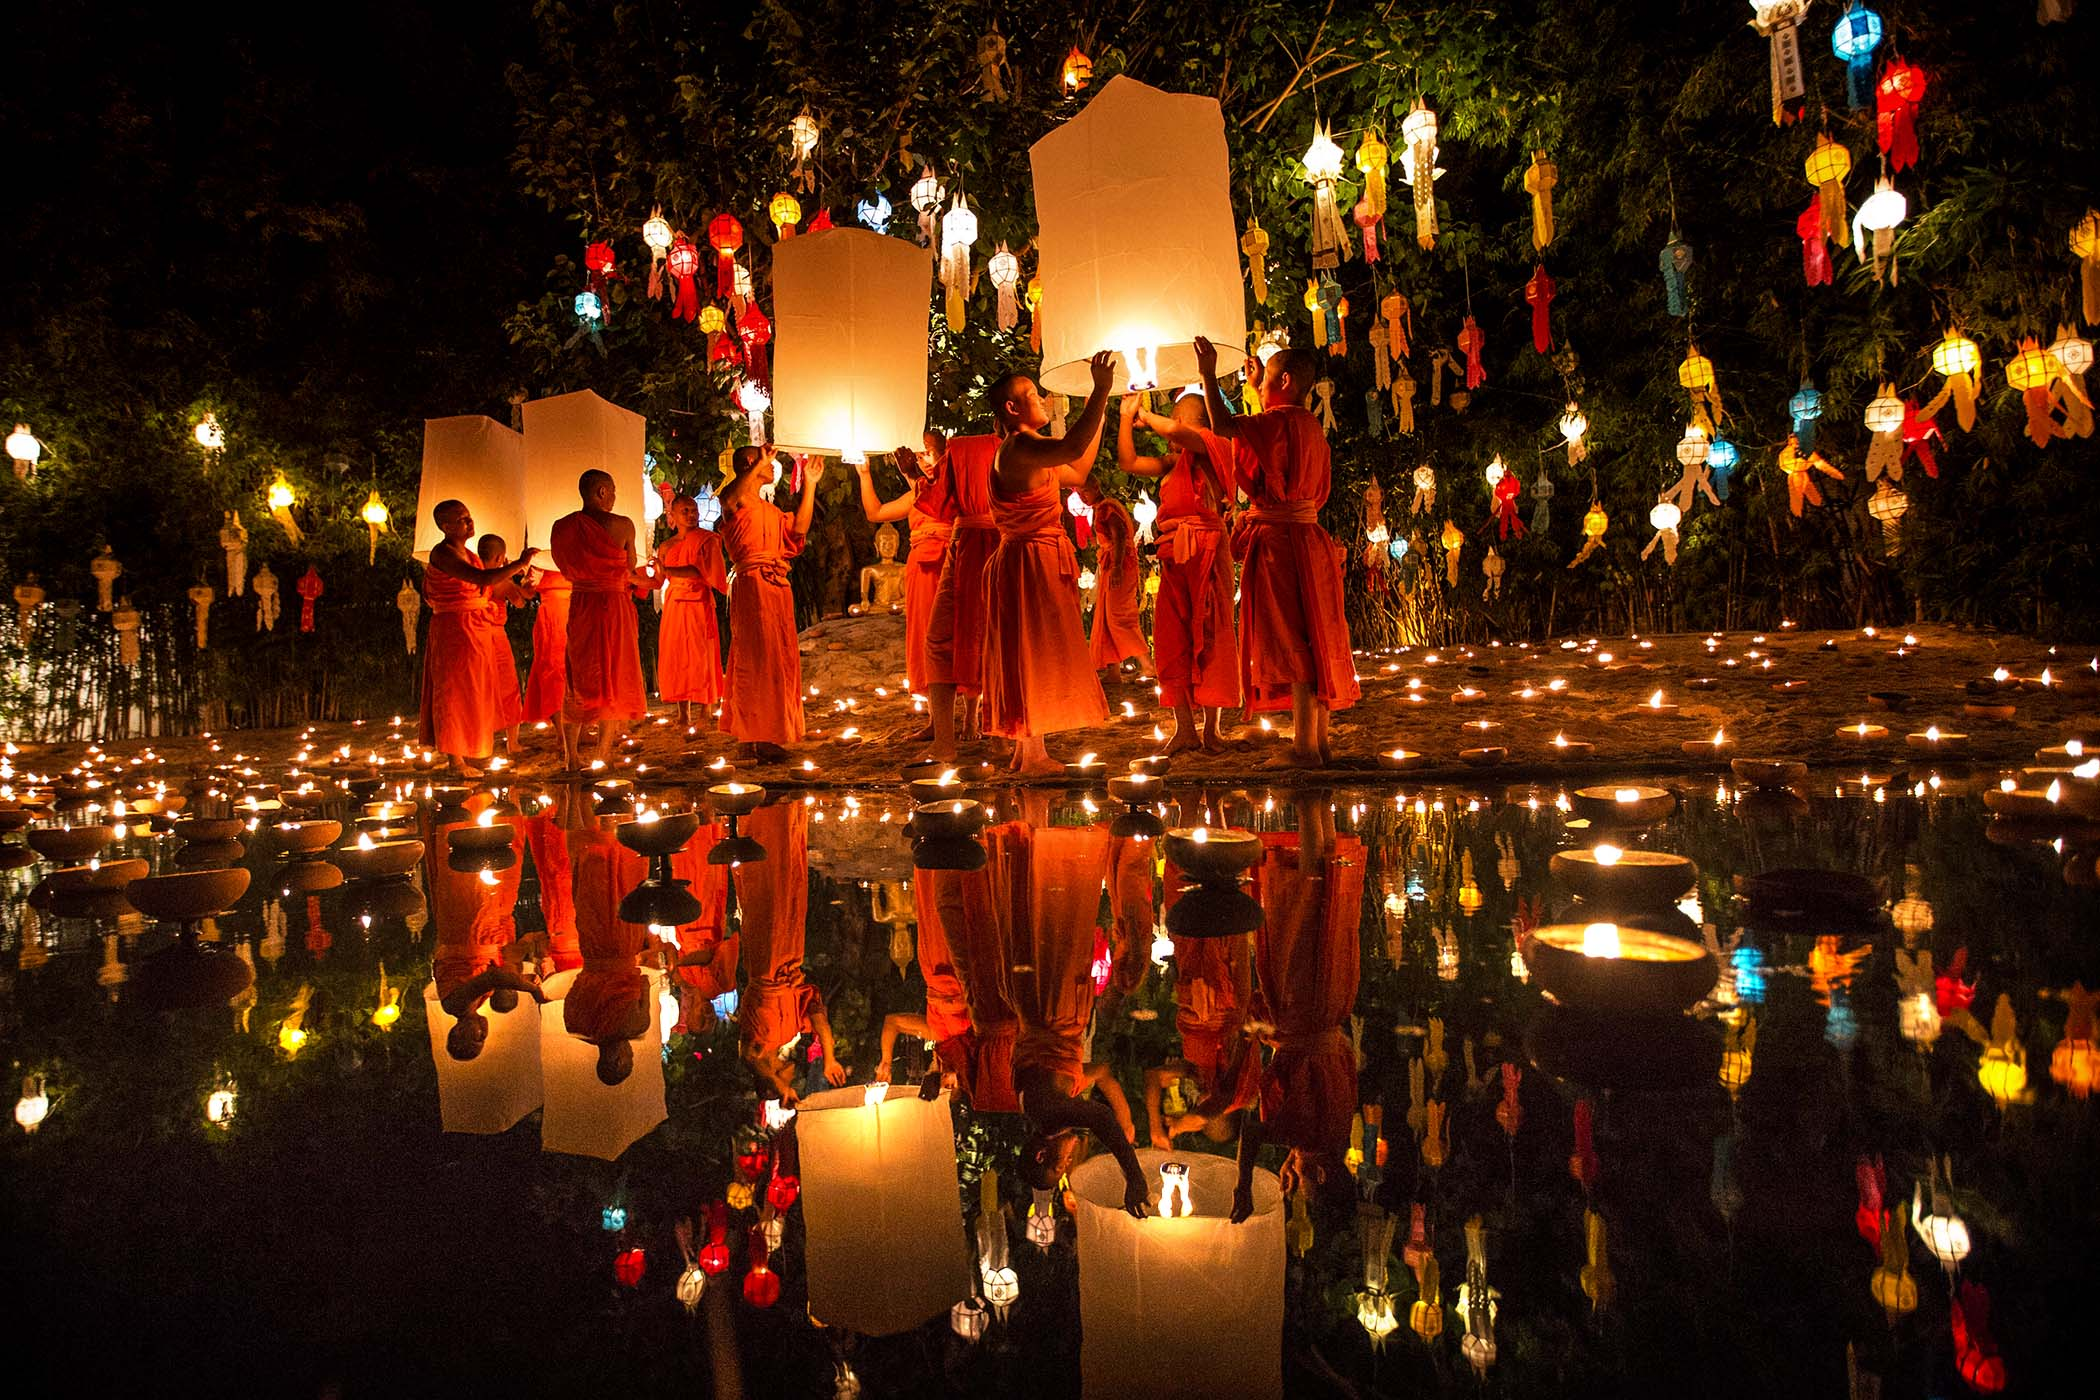 The magic night of Thai lanterns